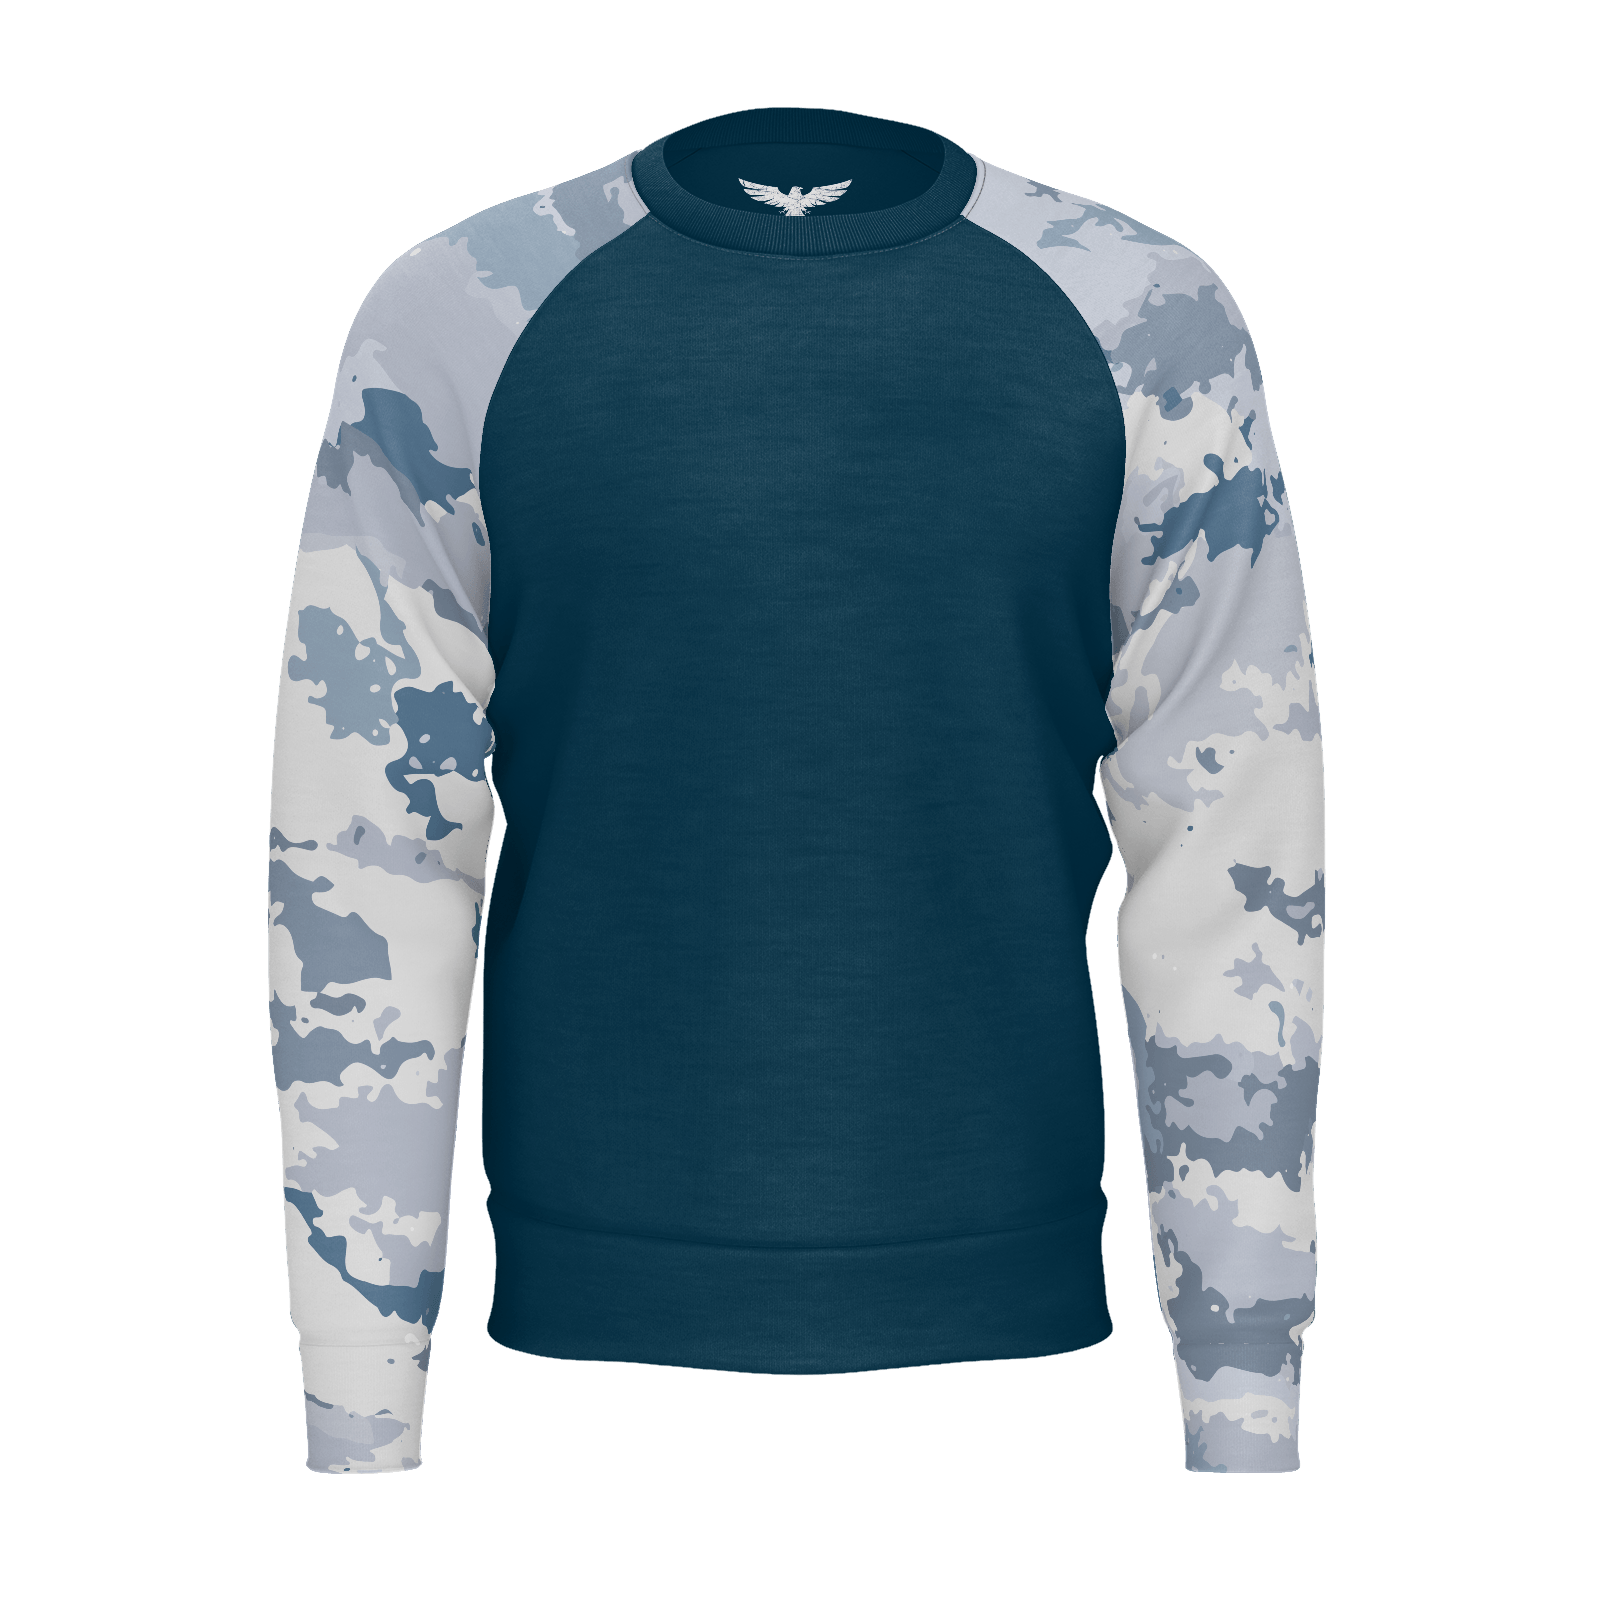 Men's FYC Coast Camo Grey Sleeved Sustainable Raglan Sweatshirt - Find Your Coast Supply Co.